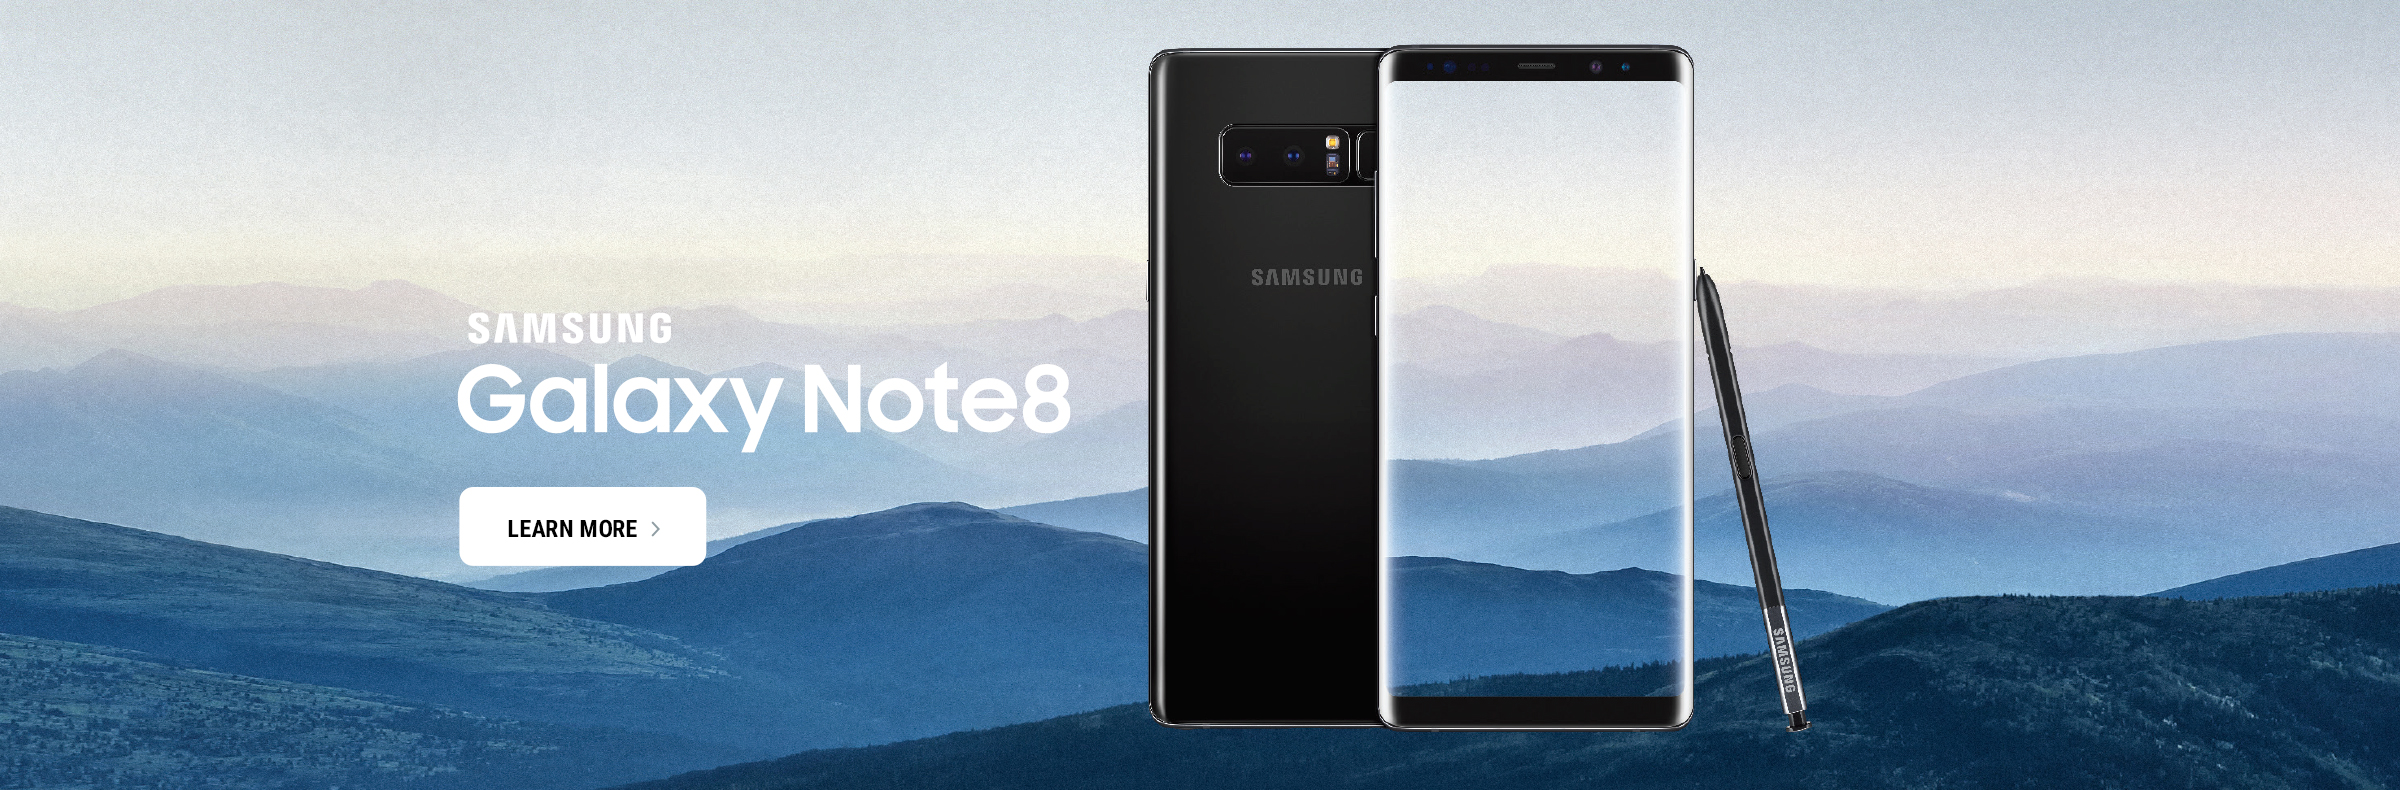 Samsung Galaxy Note8 at WIRELESSWAVE